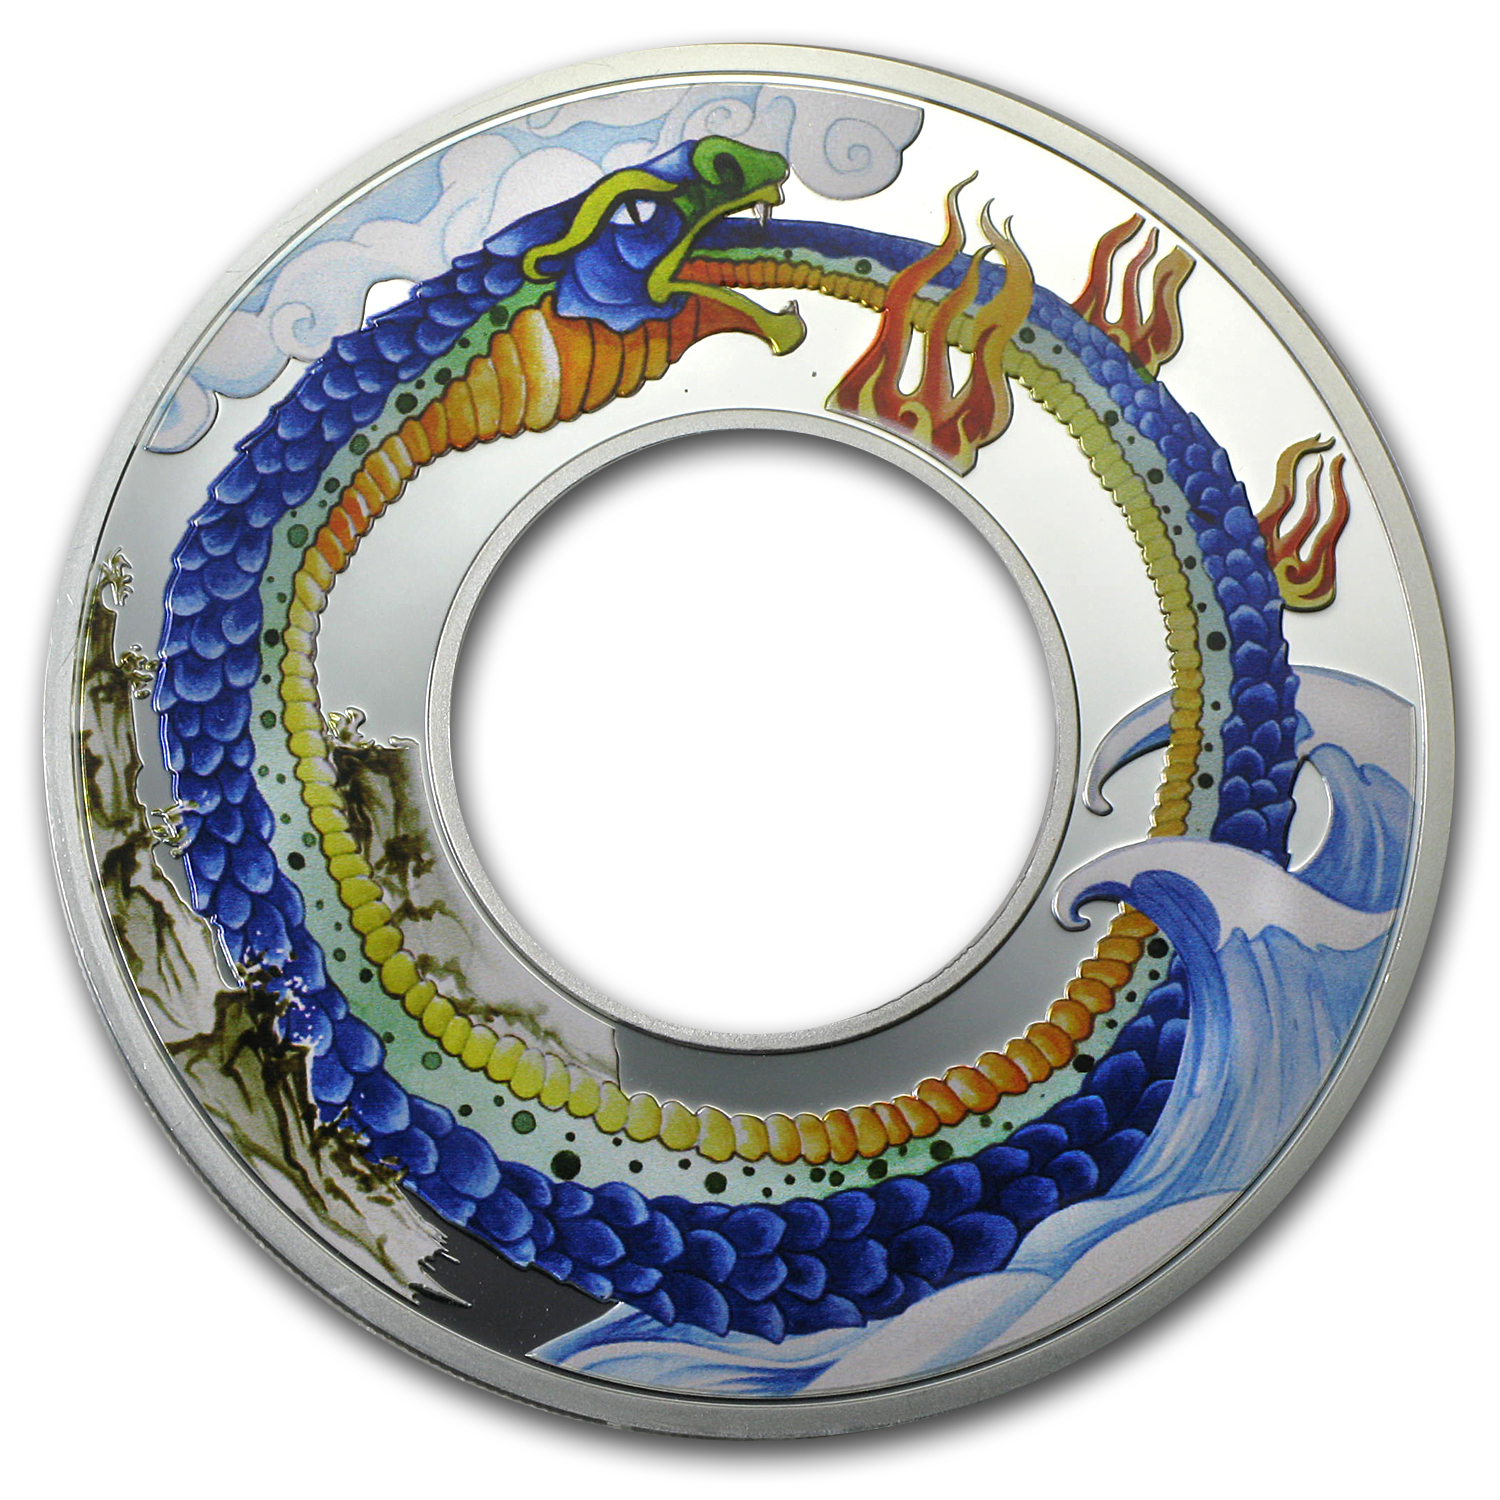 2013 Tokelau Proof Silver $10 Infinity Snake Ring Coin